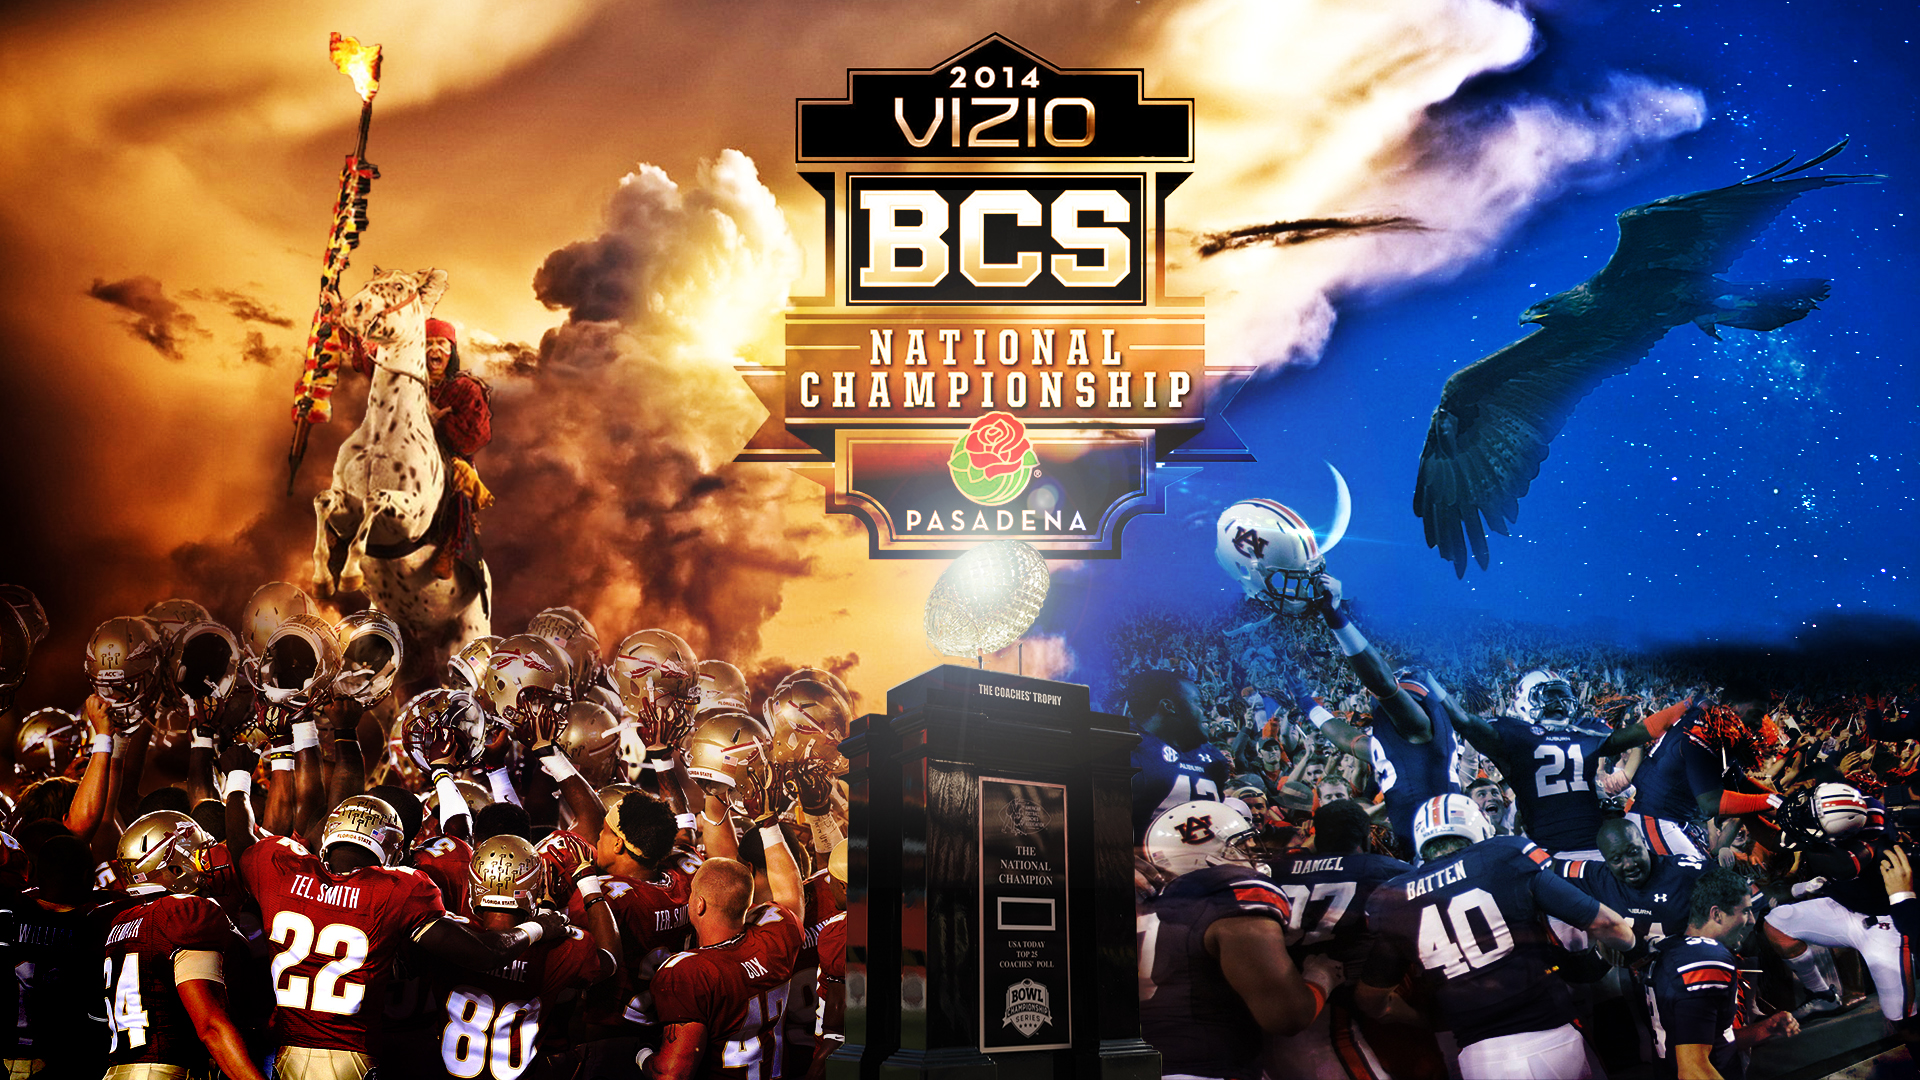 Auburn fsu wallpaper au football forum aufamily forums 115281499536589e16850og voltagebd Choice Image